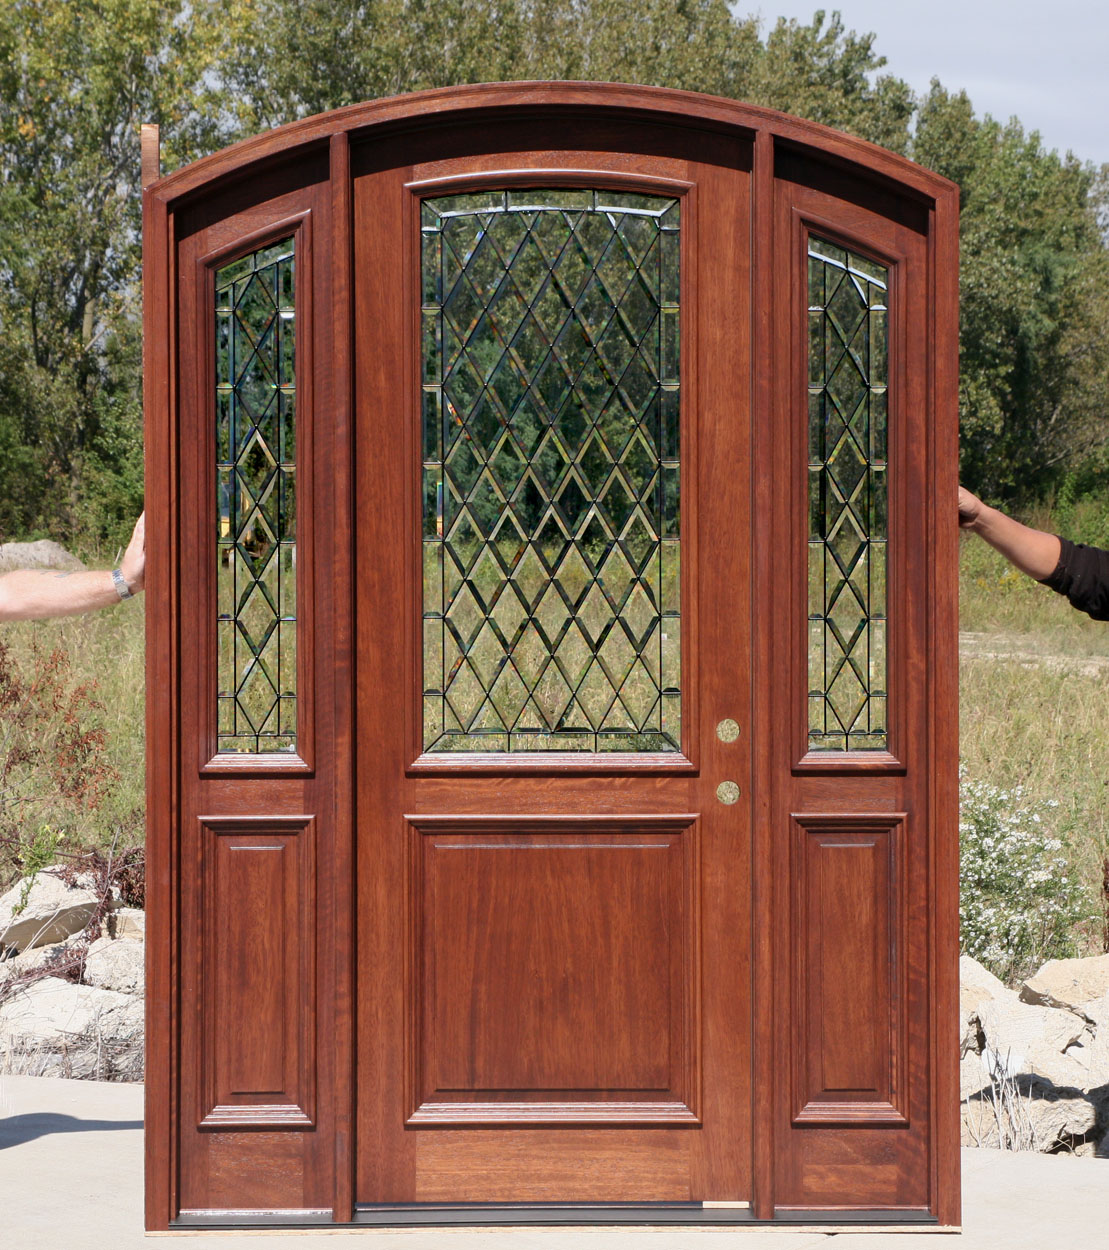 Arched Front Doors - Designer Series & Arch Top Doors - Bellagio Mahogany Doors Collection Pezcame.Com